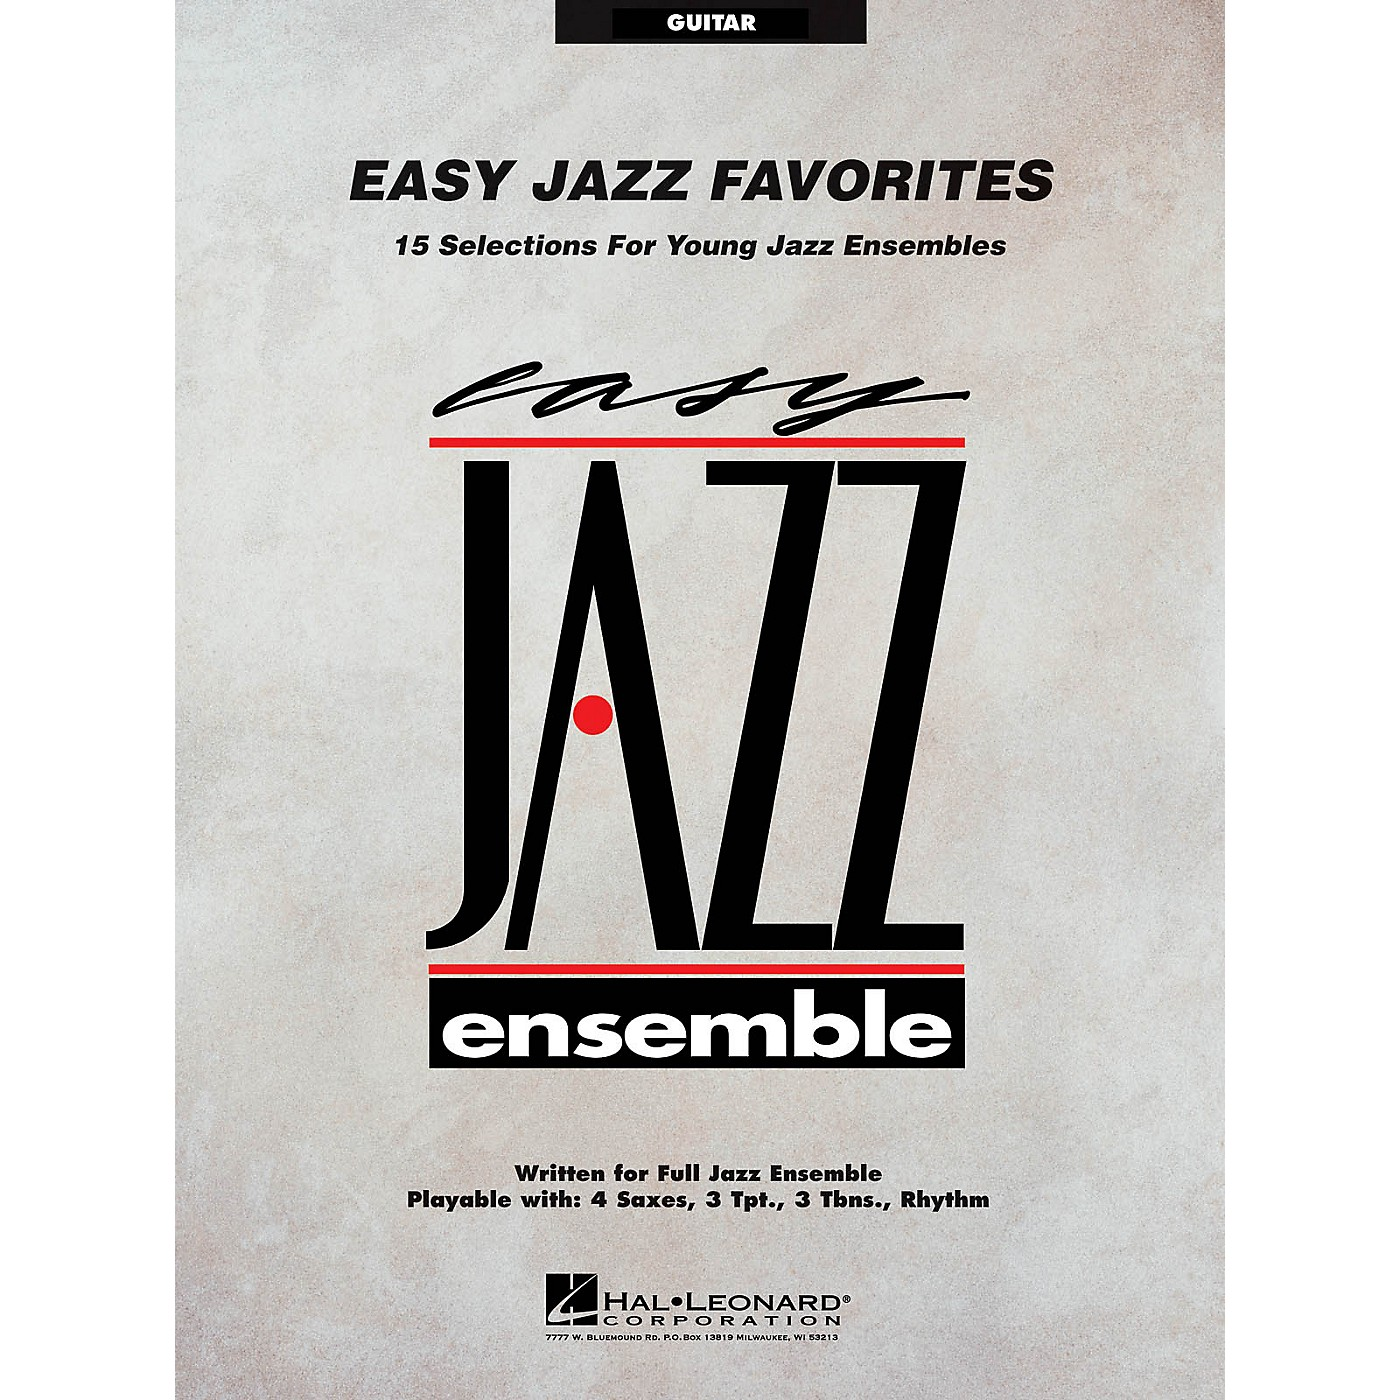 Hal Leonard Easy Jazz Favorites - Guitar Jazz Band Level 2 Composed by Various thumbnail